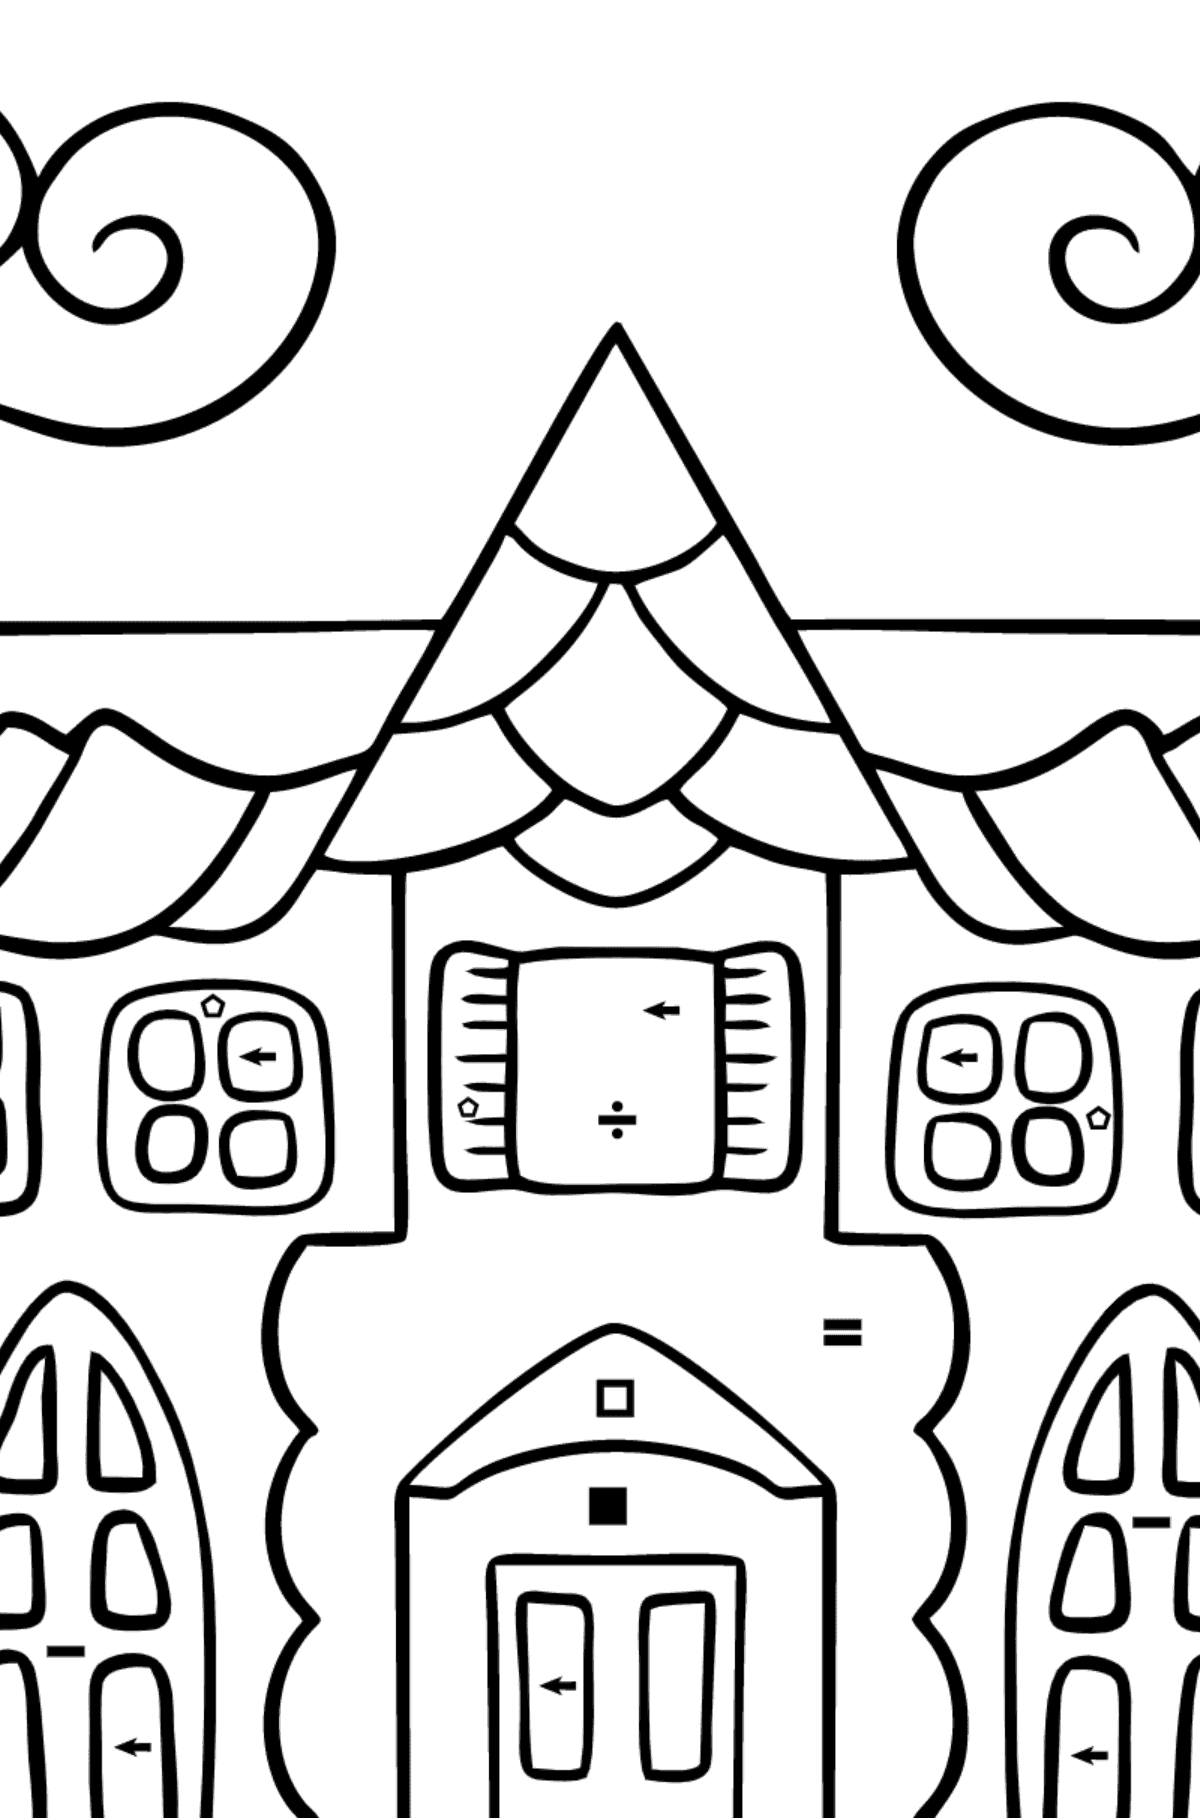 Coloring Page - A House in an Enchanted Kingdom for Children  - Color by Symbols and Geometric Shapes